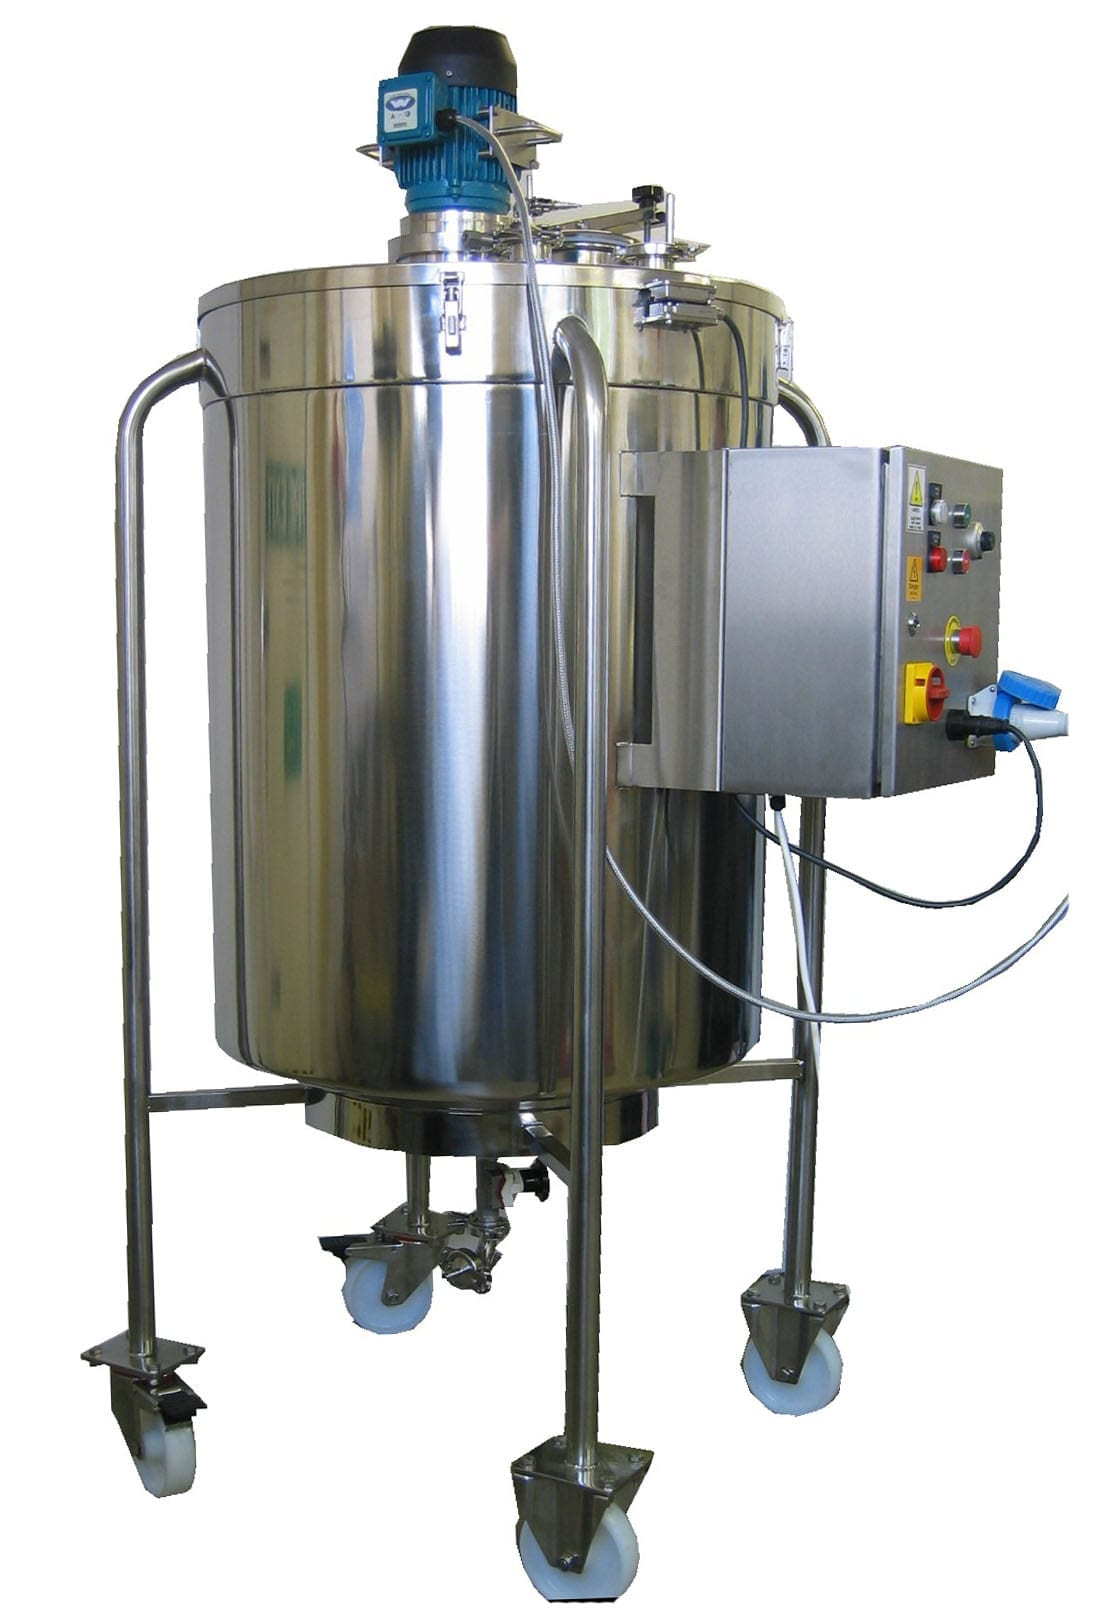 Hygienic Stainless Steel Mixing Vessel